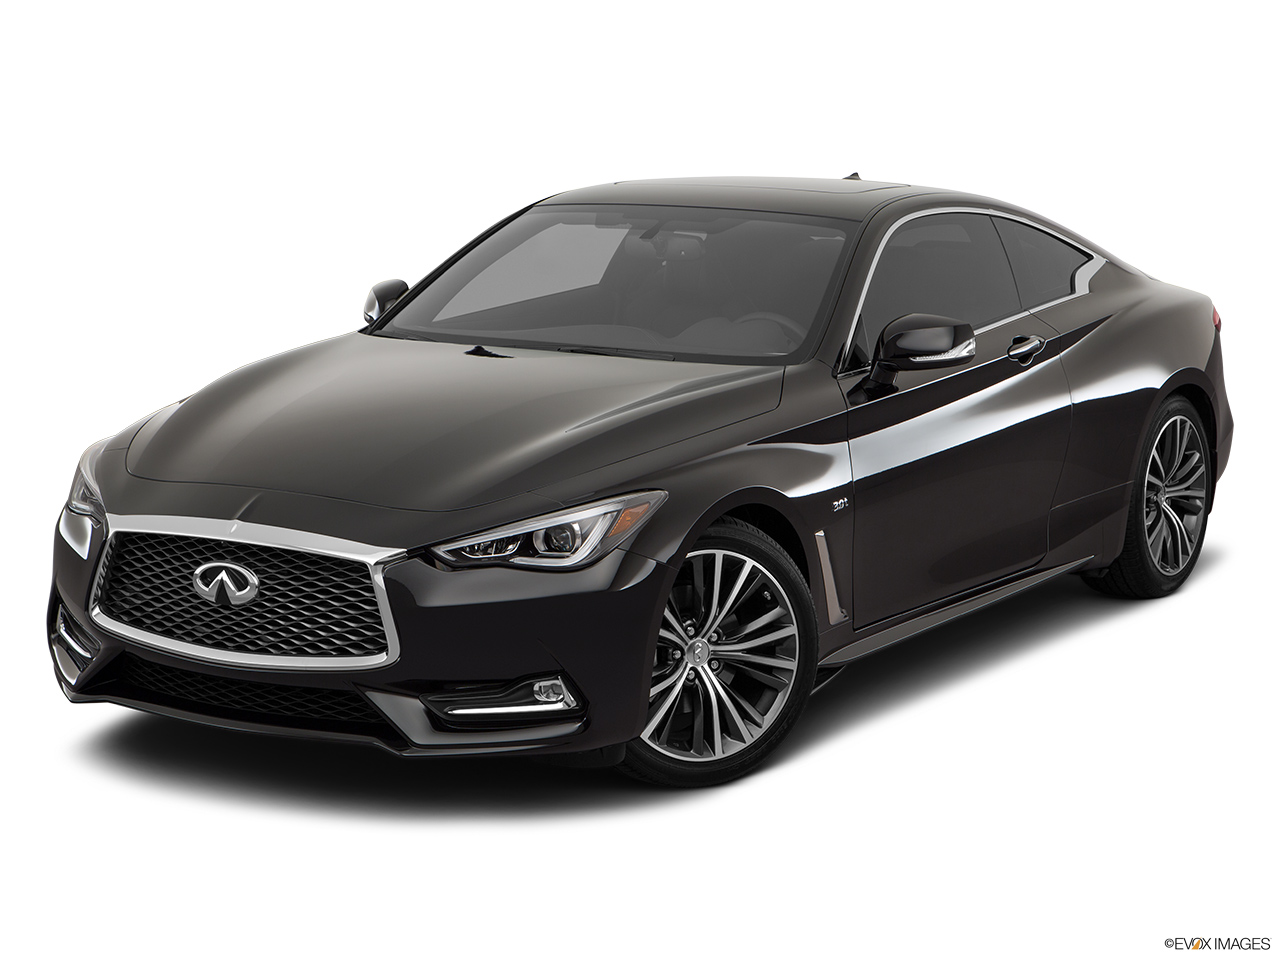 2017 Infiniti Q50 Specs >> Infiniti Q60 Coupe 2017 3.0T Premium in UAE: New Car Prices, Specs, Reviews & Photos | YallaMotor